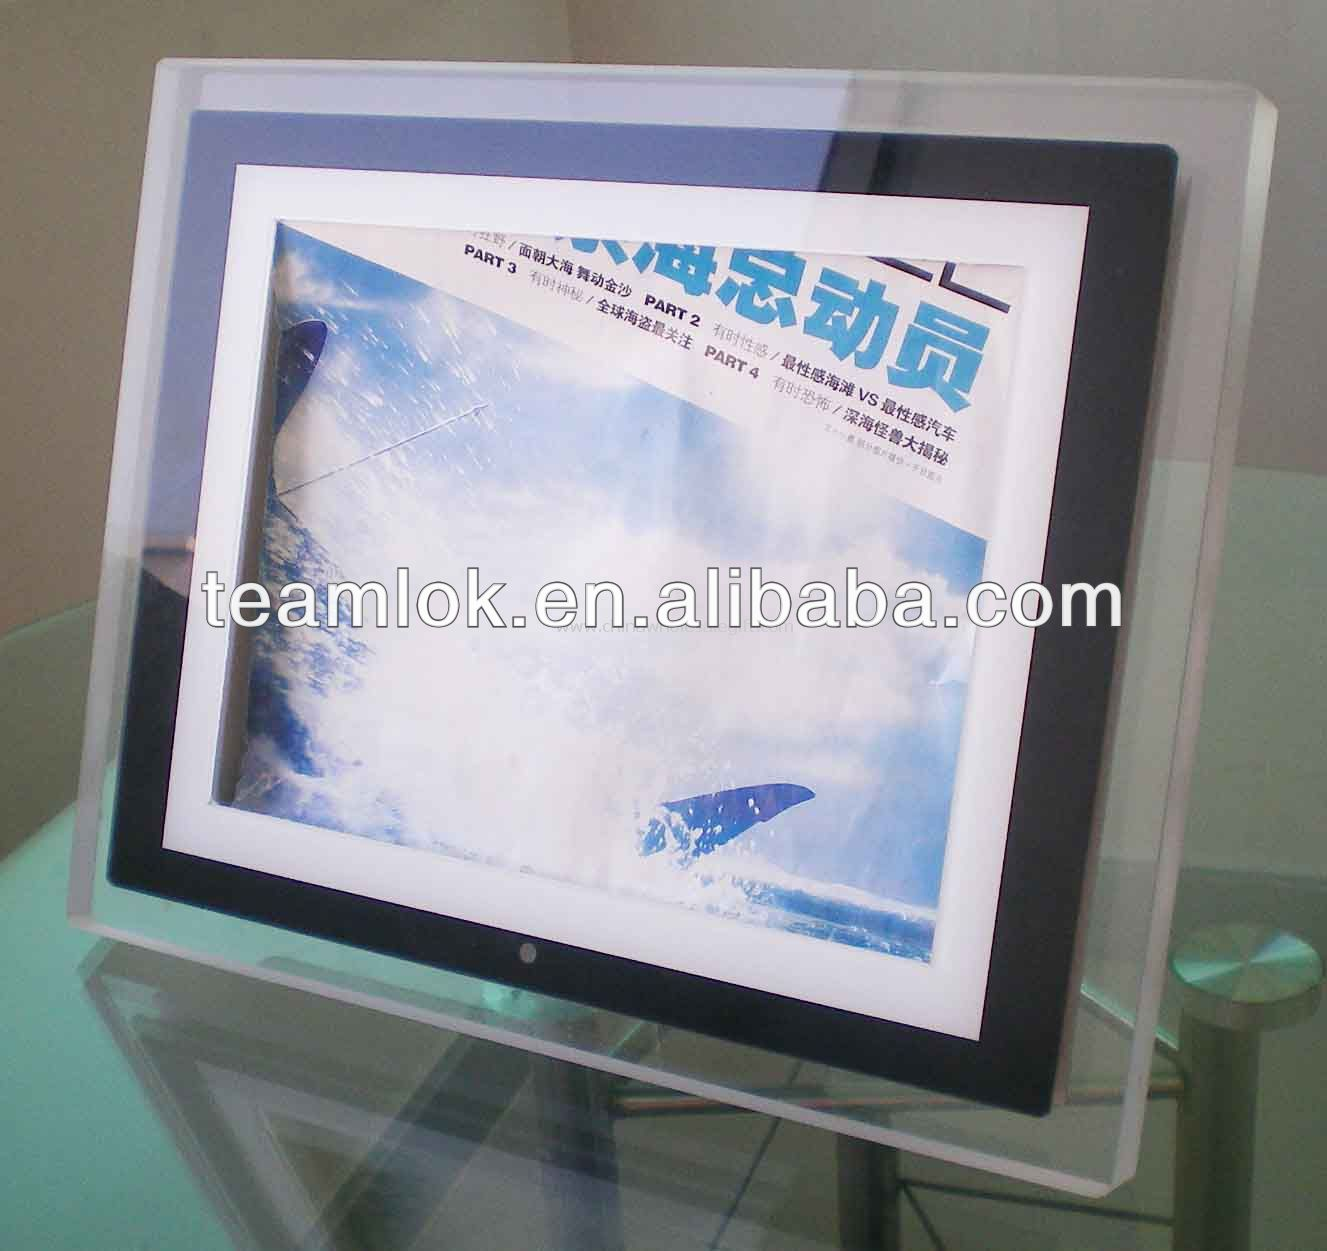 acrylic desktops photo frame, picture frames stand